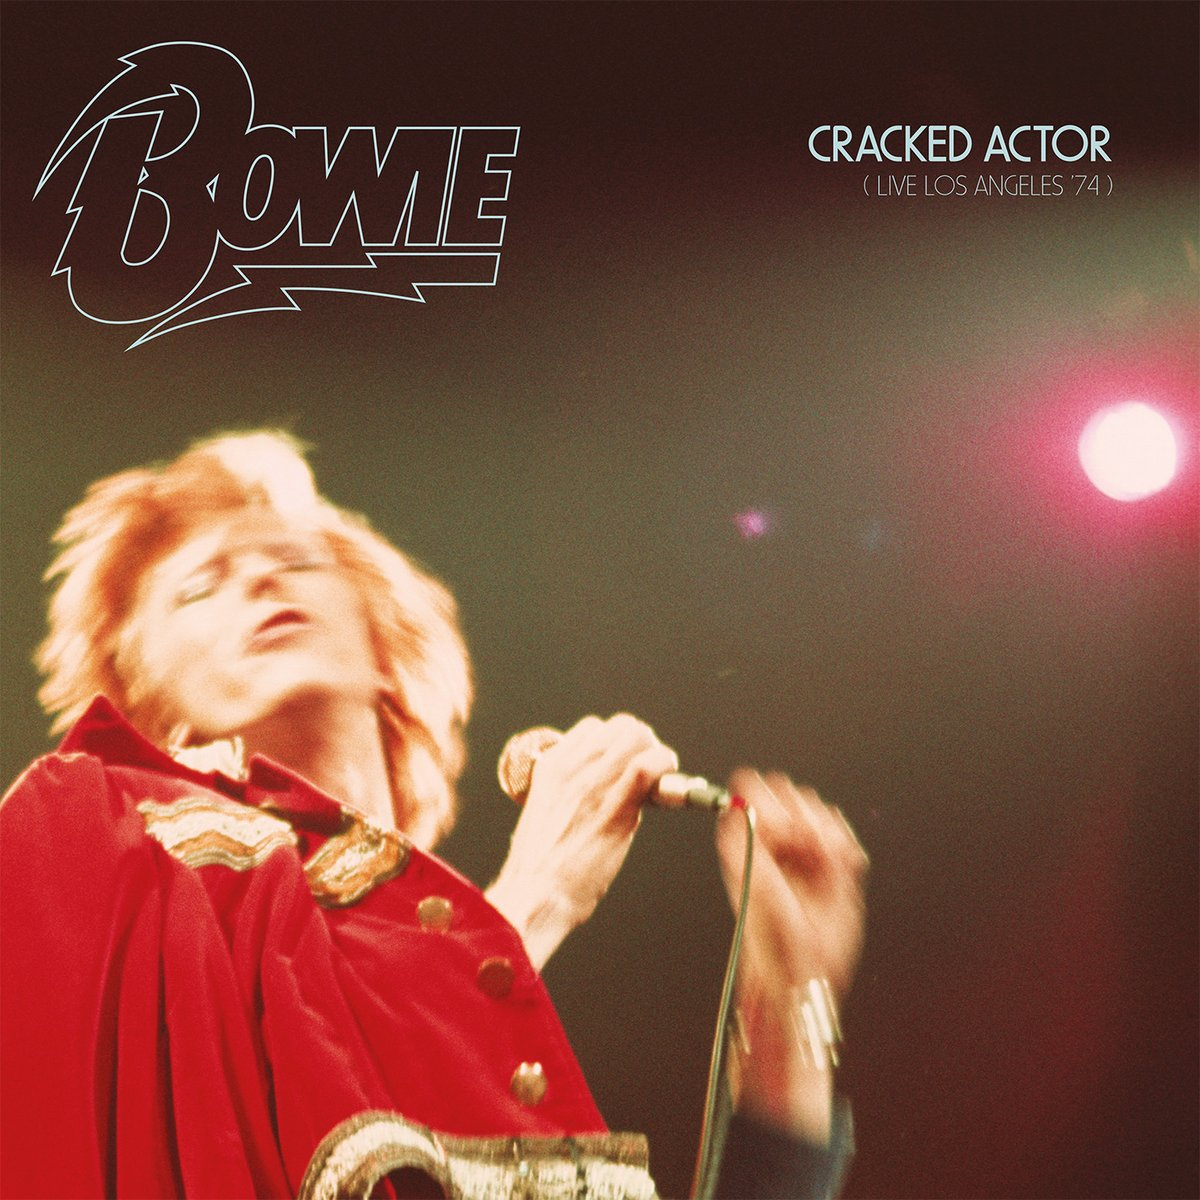 DAVID BOWIE | 'Cracked Actor (Live Los Angeles '74)'